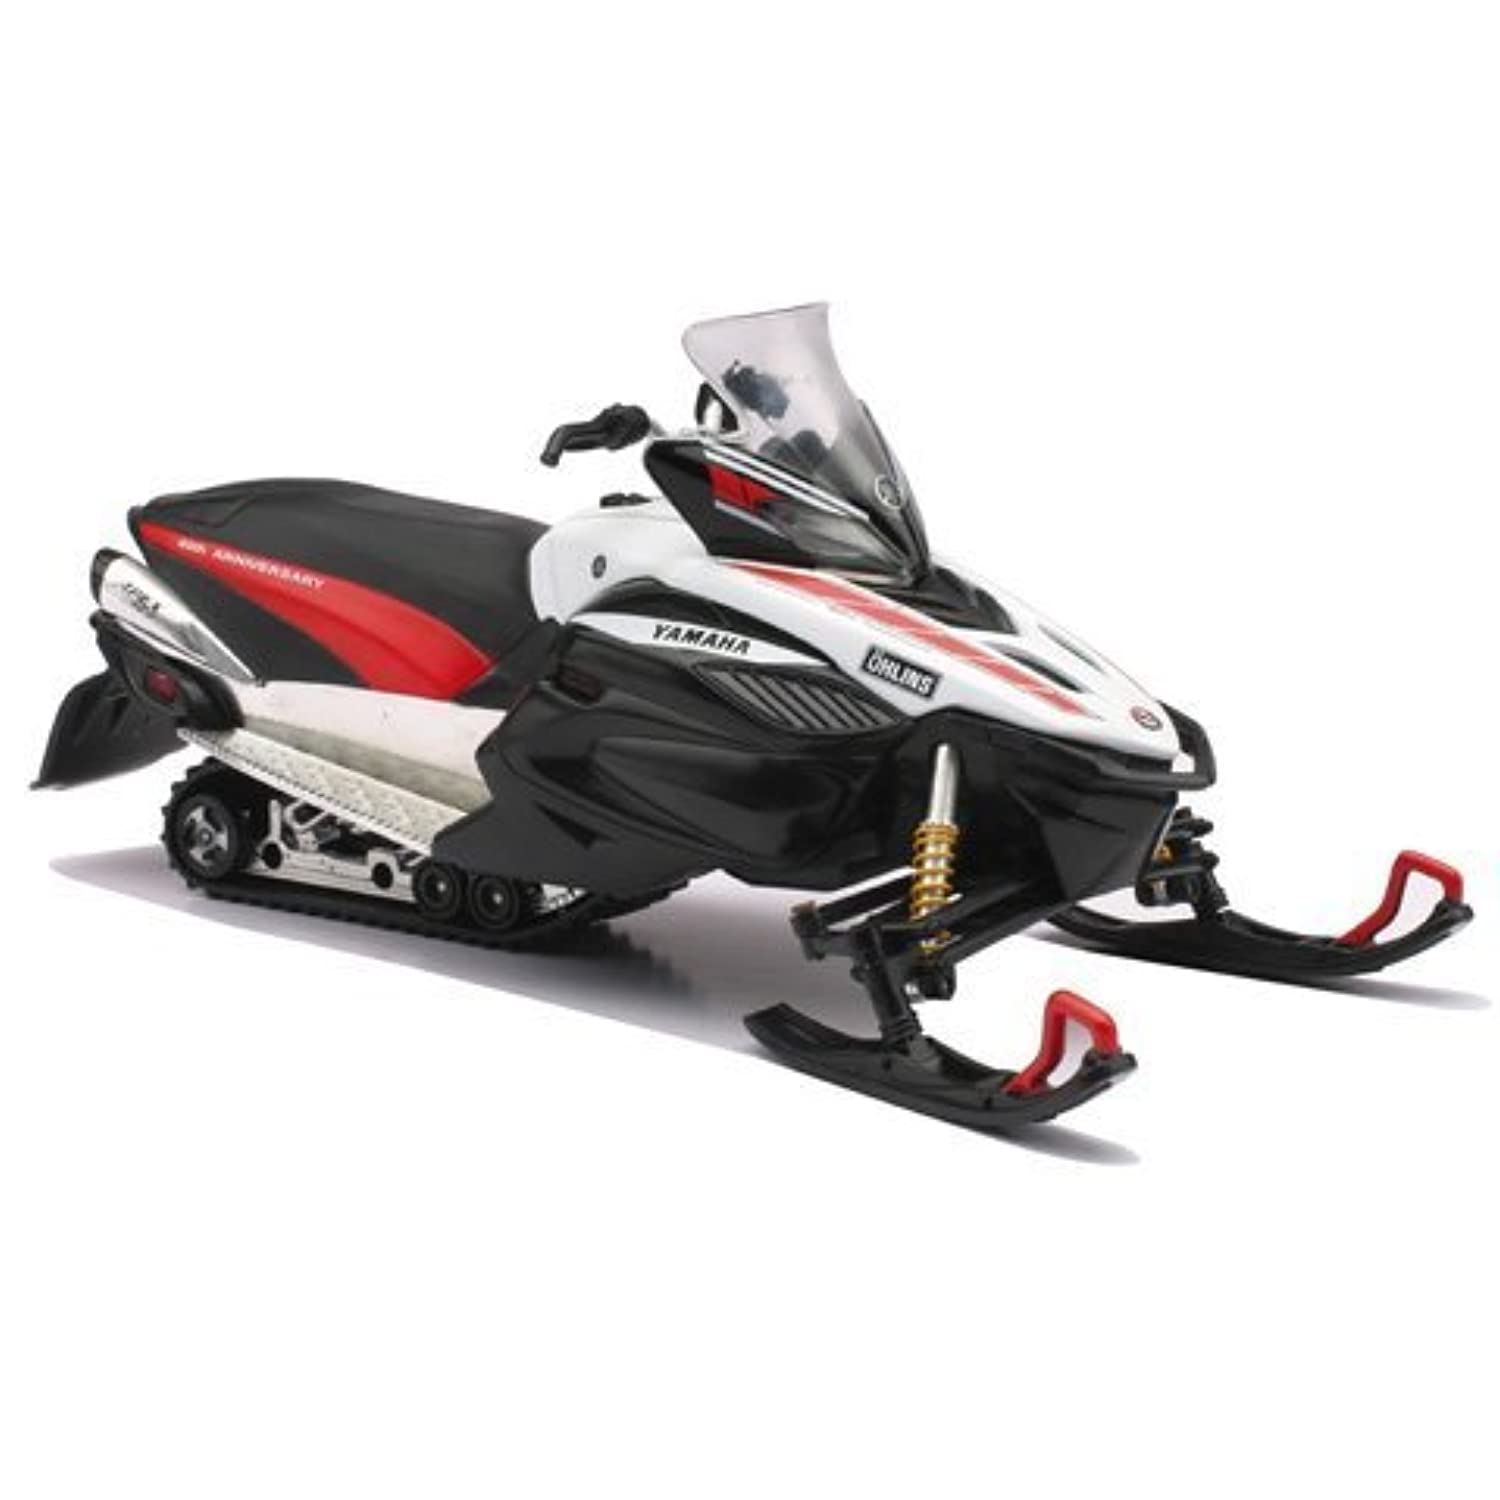 New ray toys 1 12 scale snowmobile yamaha rx 1 42887 by for New yamaha snowmobile